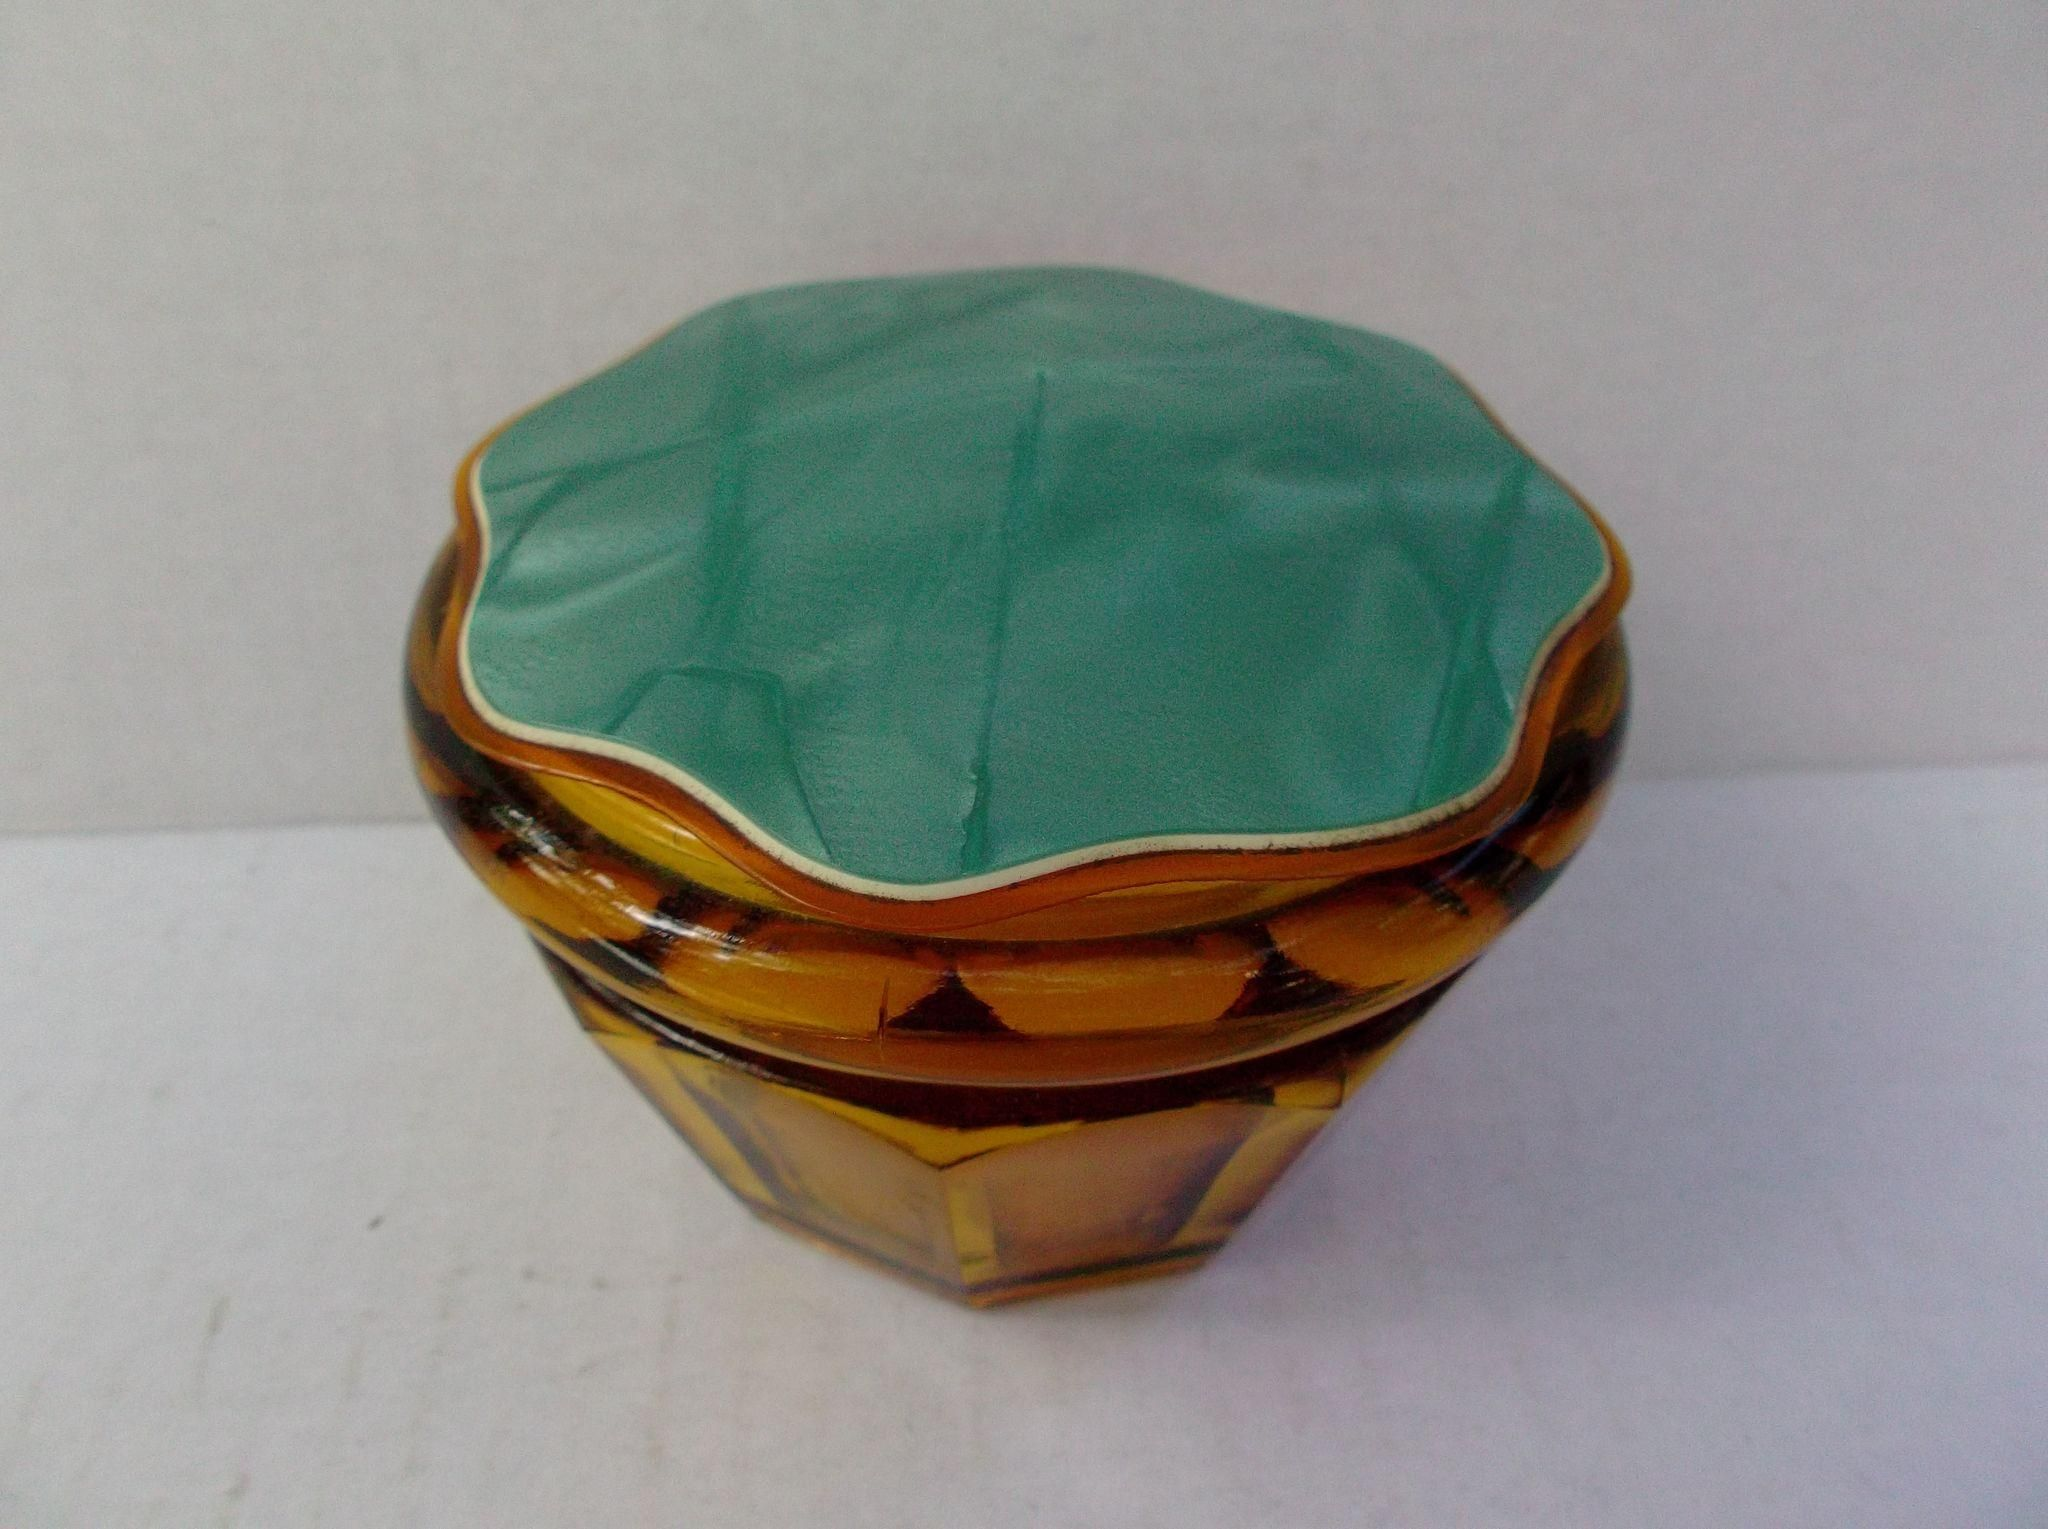 Amber Glass Vanity Powder Jar Box Celluloid Plastic Lid Vintage Paneled offered by #rubylane shop Saltymaggie's Treasures.